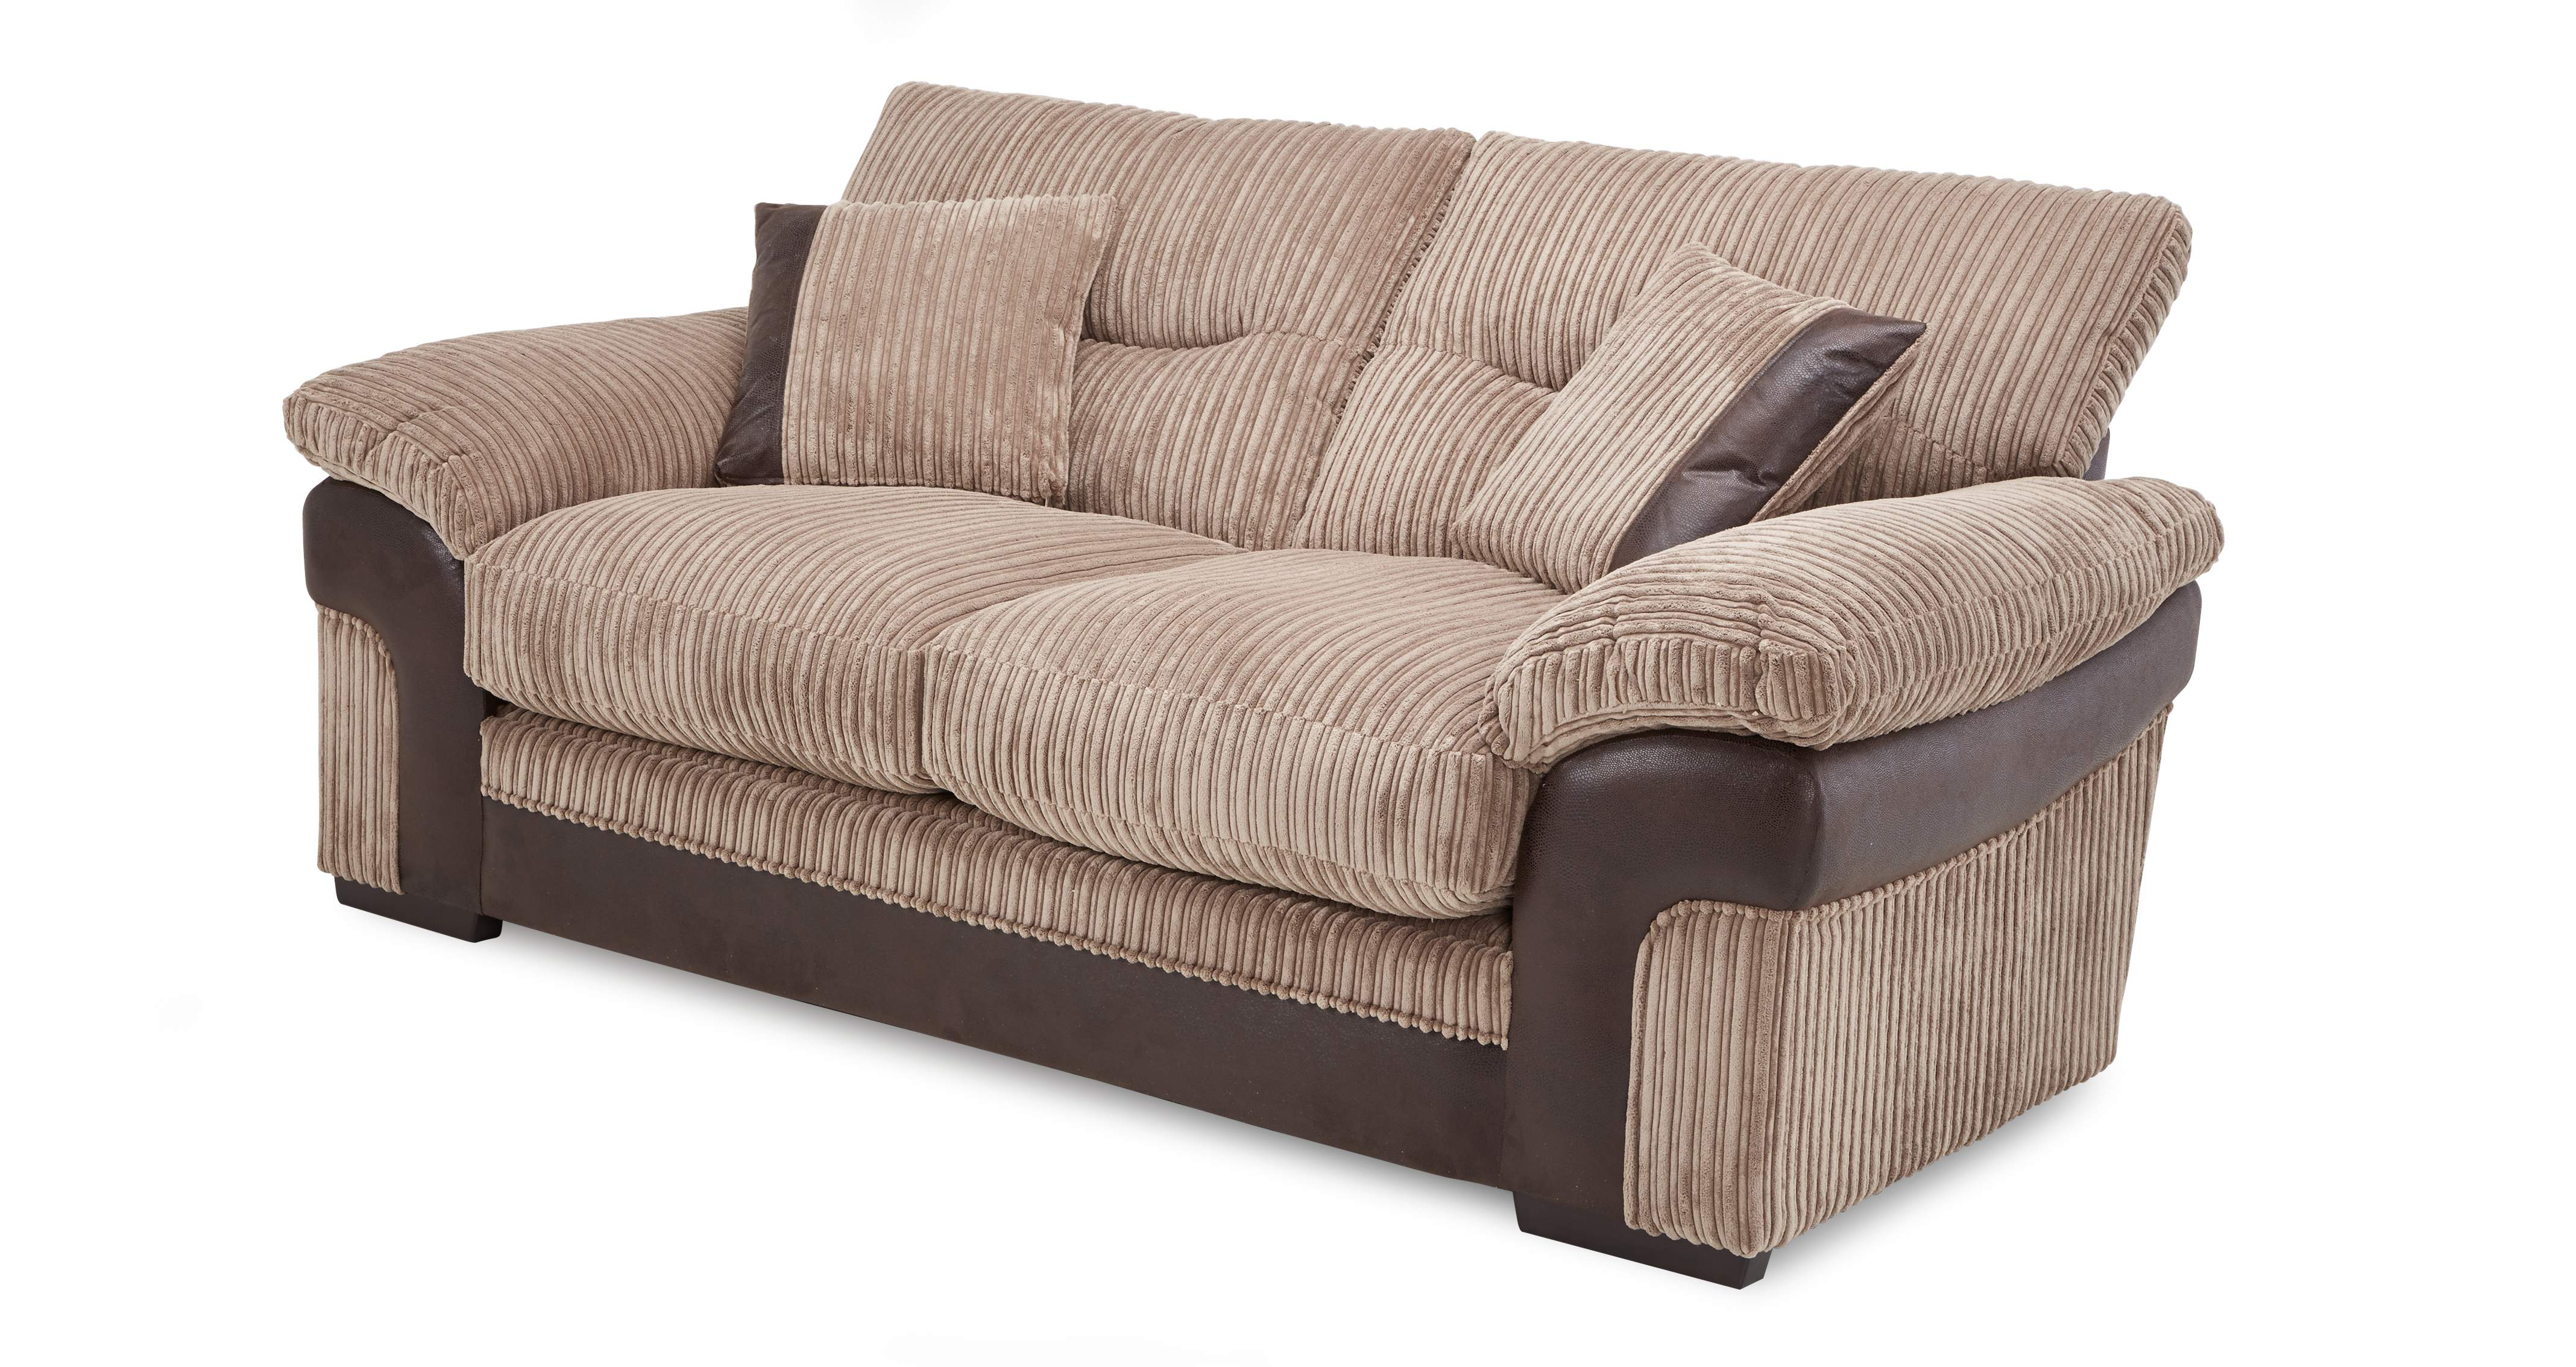 Dfs Heath Set Inc Brown Fabric 2 Seater Sofa Bed